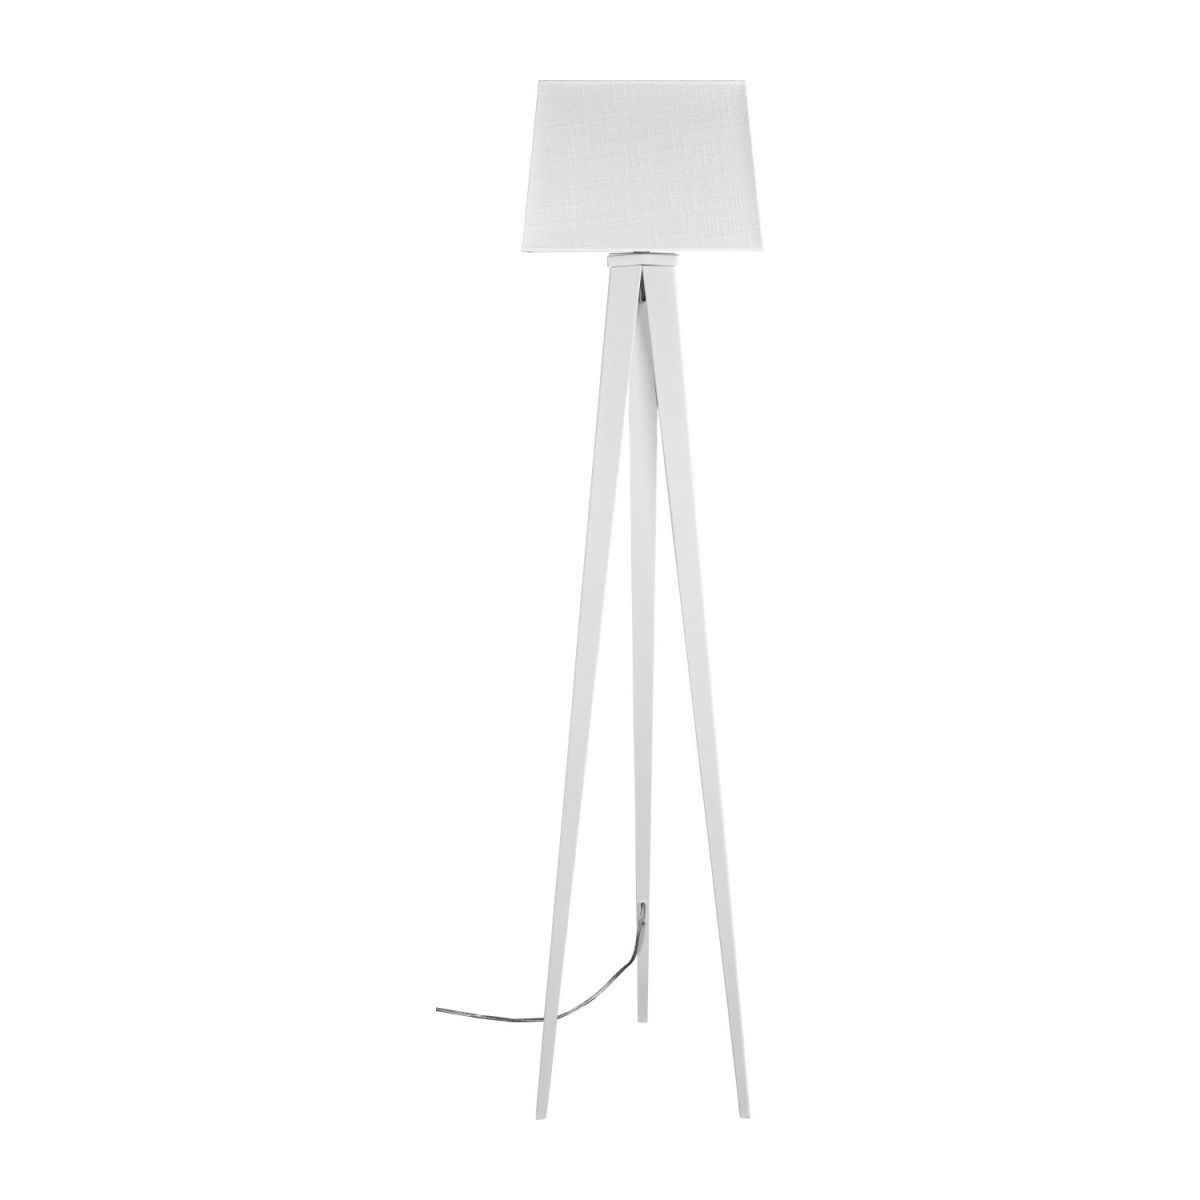 Floor lamp base made of metal, white n°3